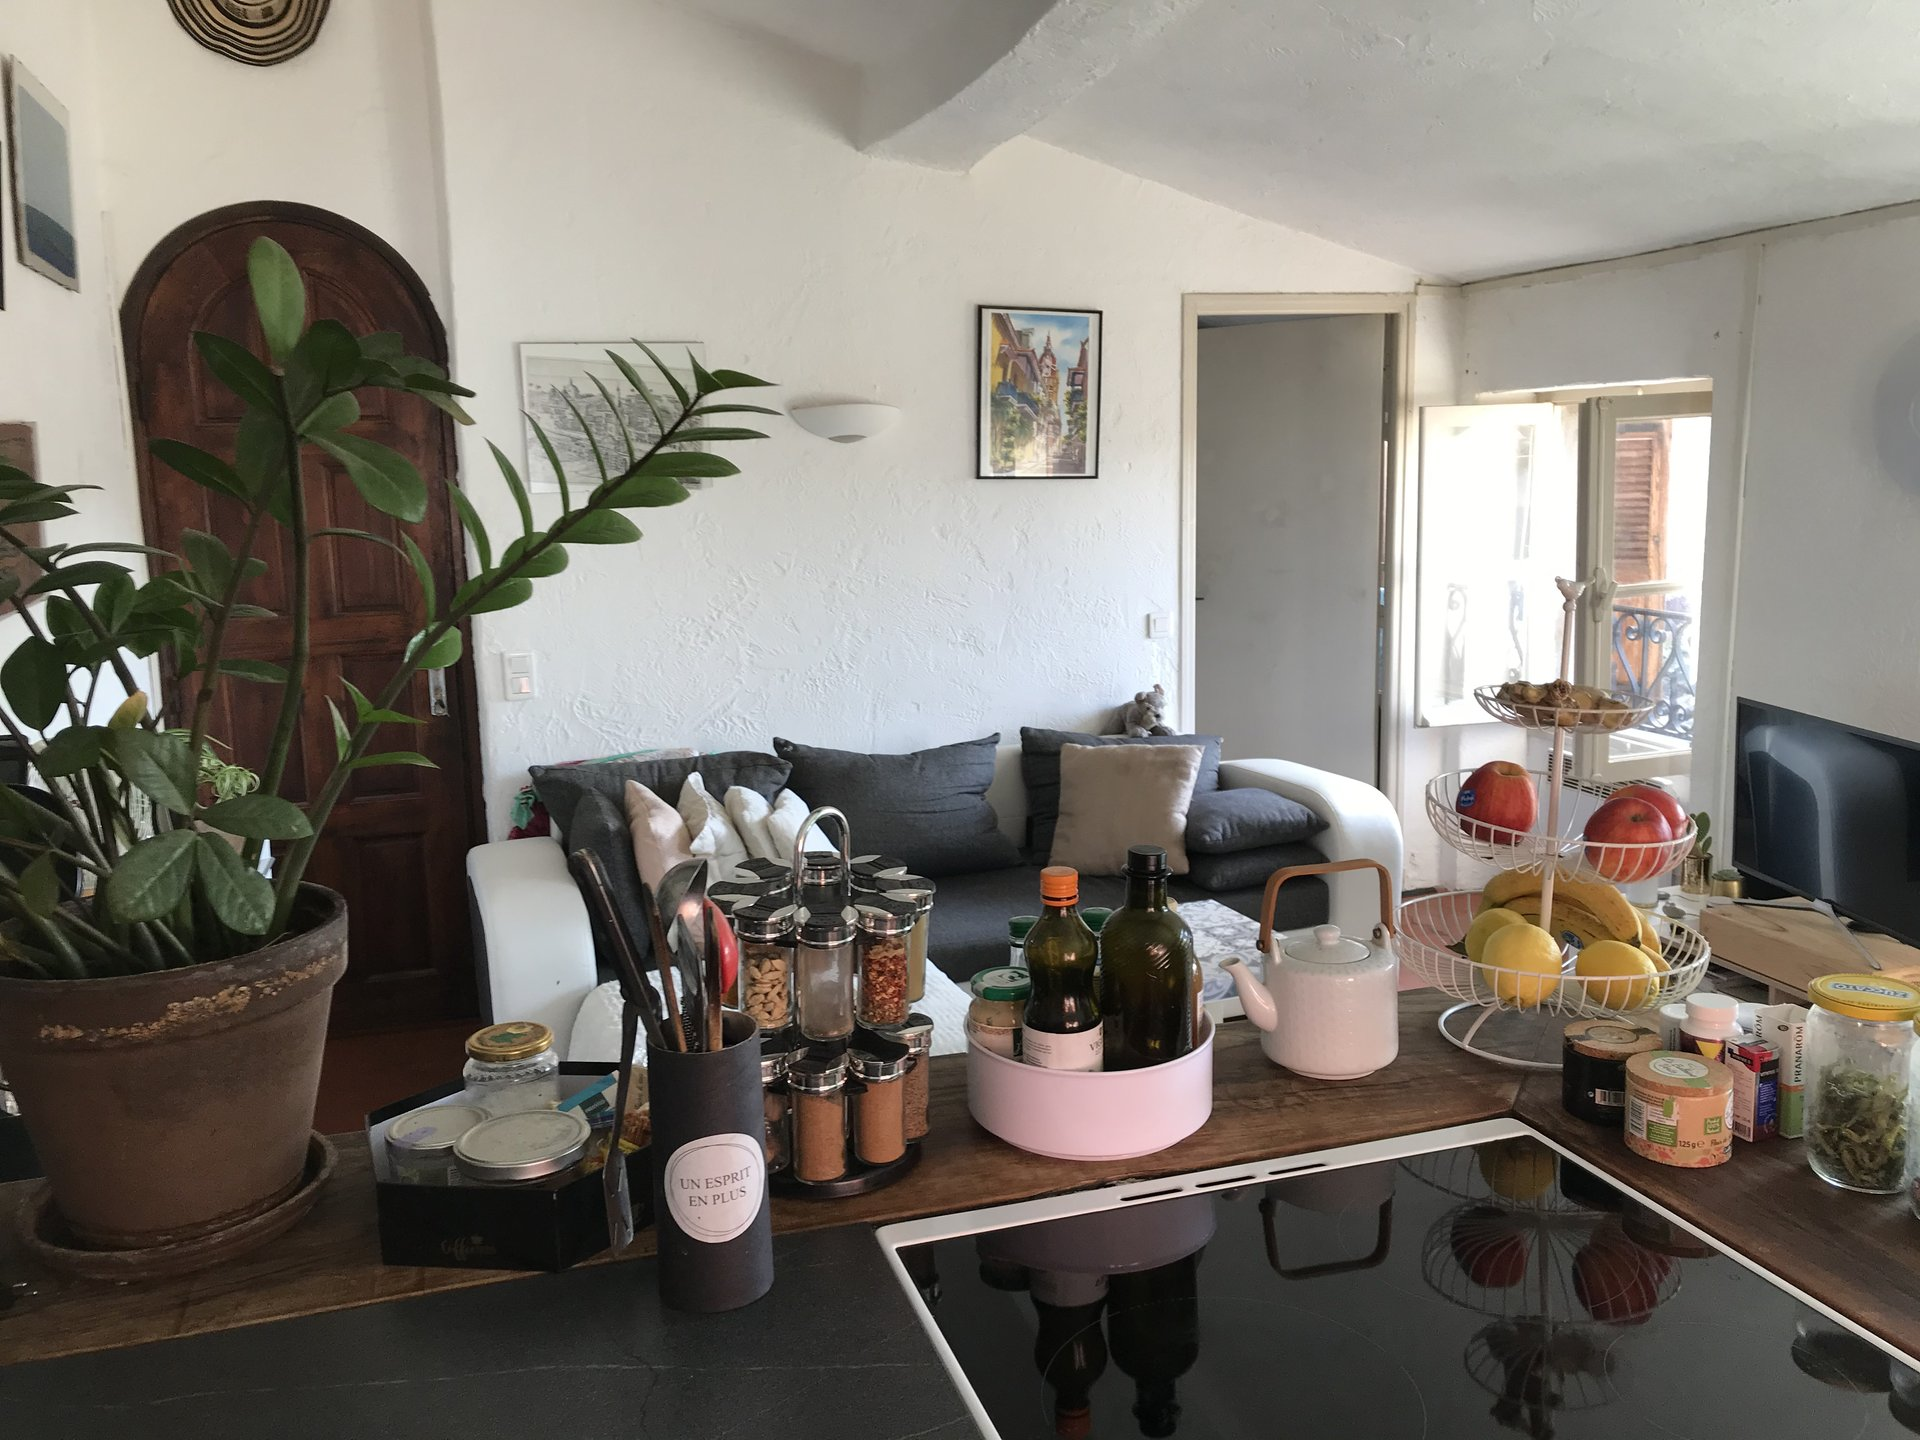 Biot Village 1 bedroom flat 31sqm